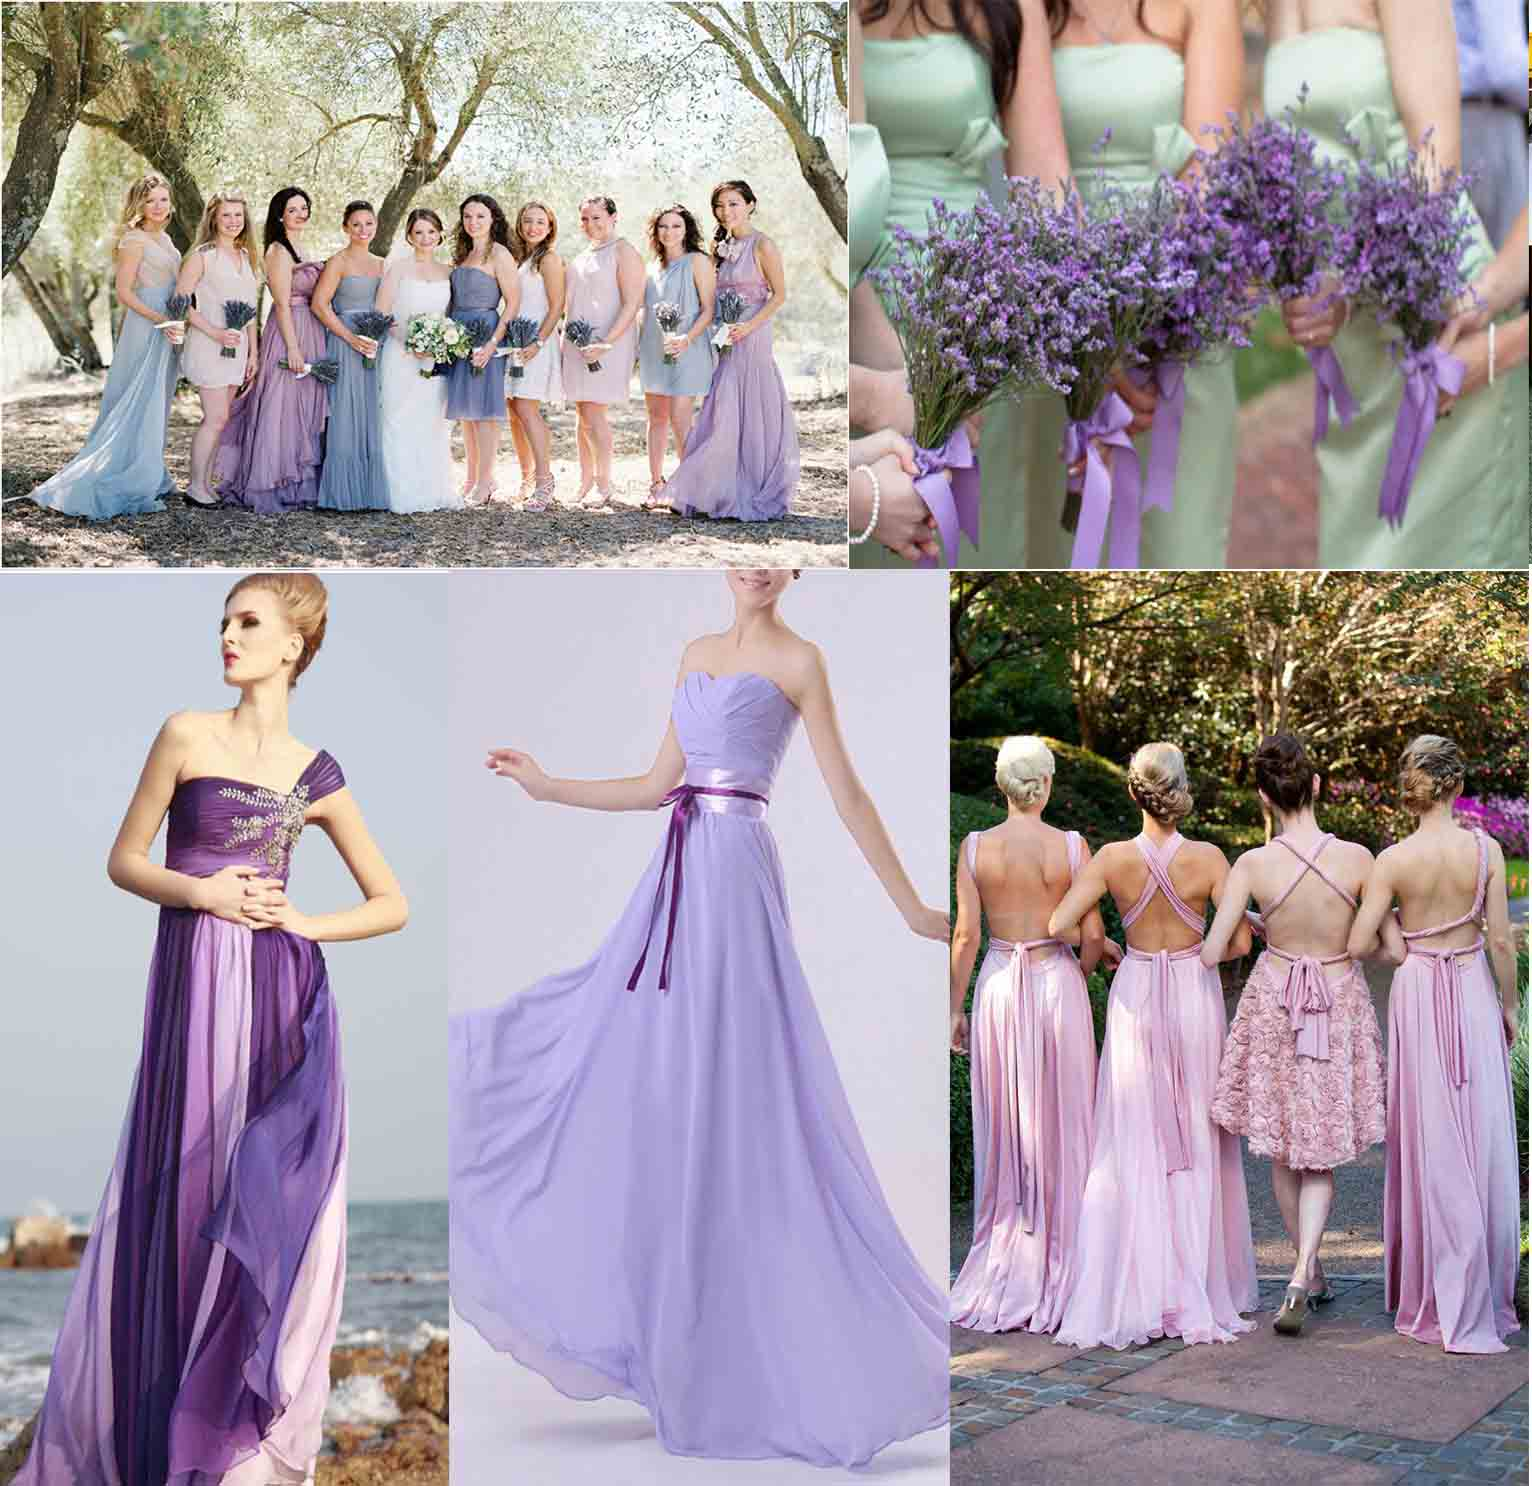 Lavender bridesmaid dresses archives happyinvitation lavender bridesmaid dresses ombrellifo Image collections